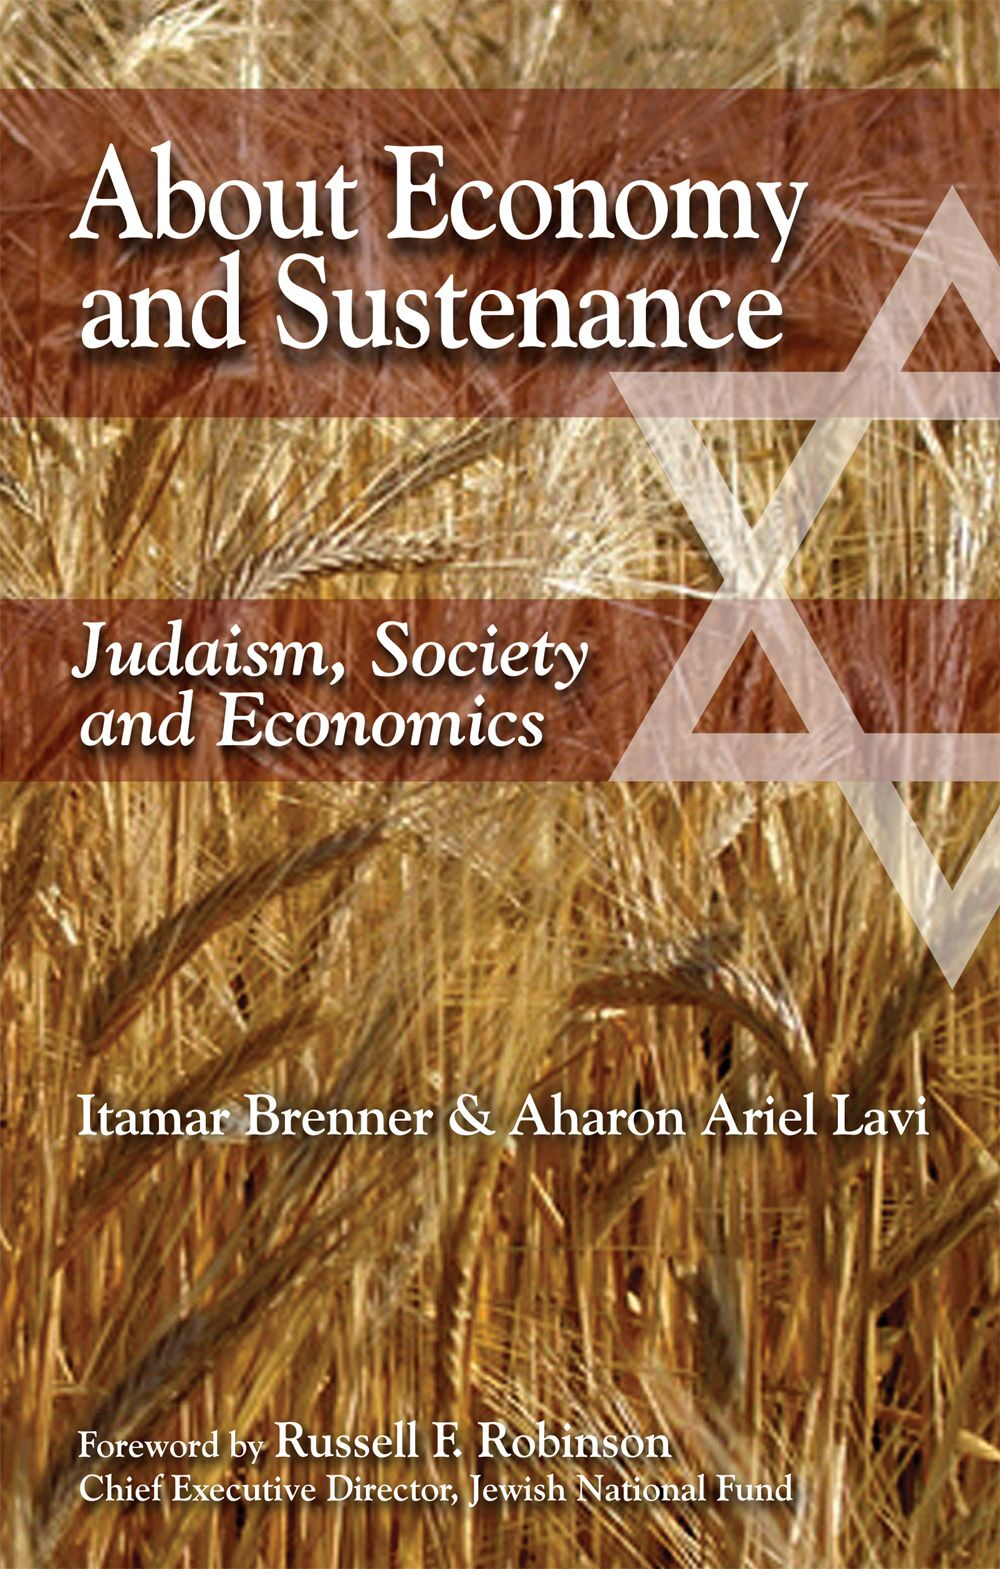 About Economy and Sustenance: Judaism, Society and Economics